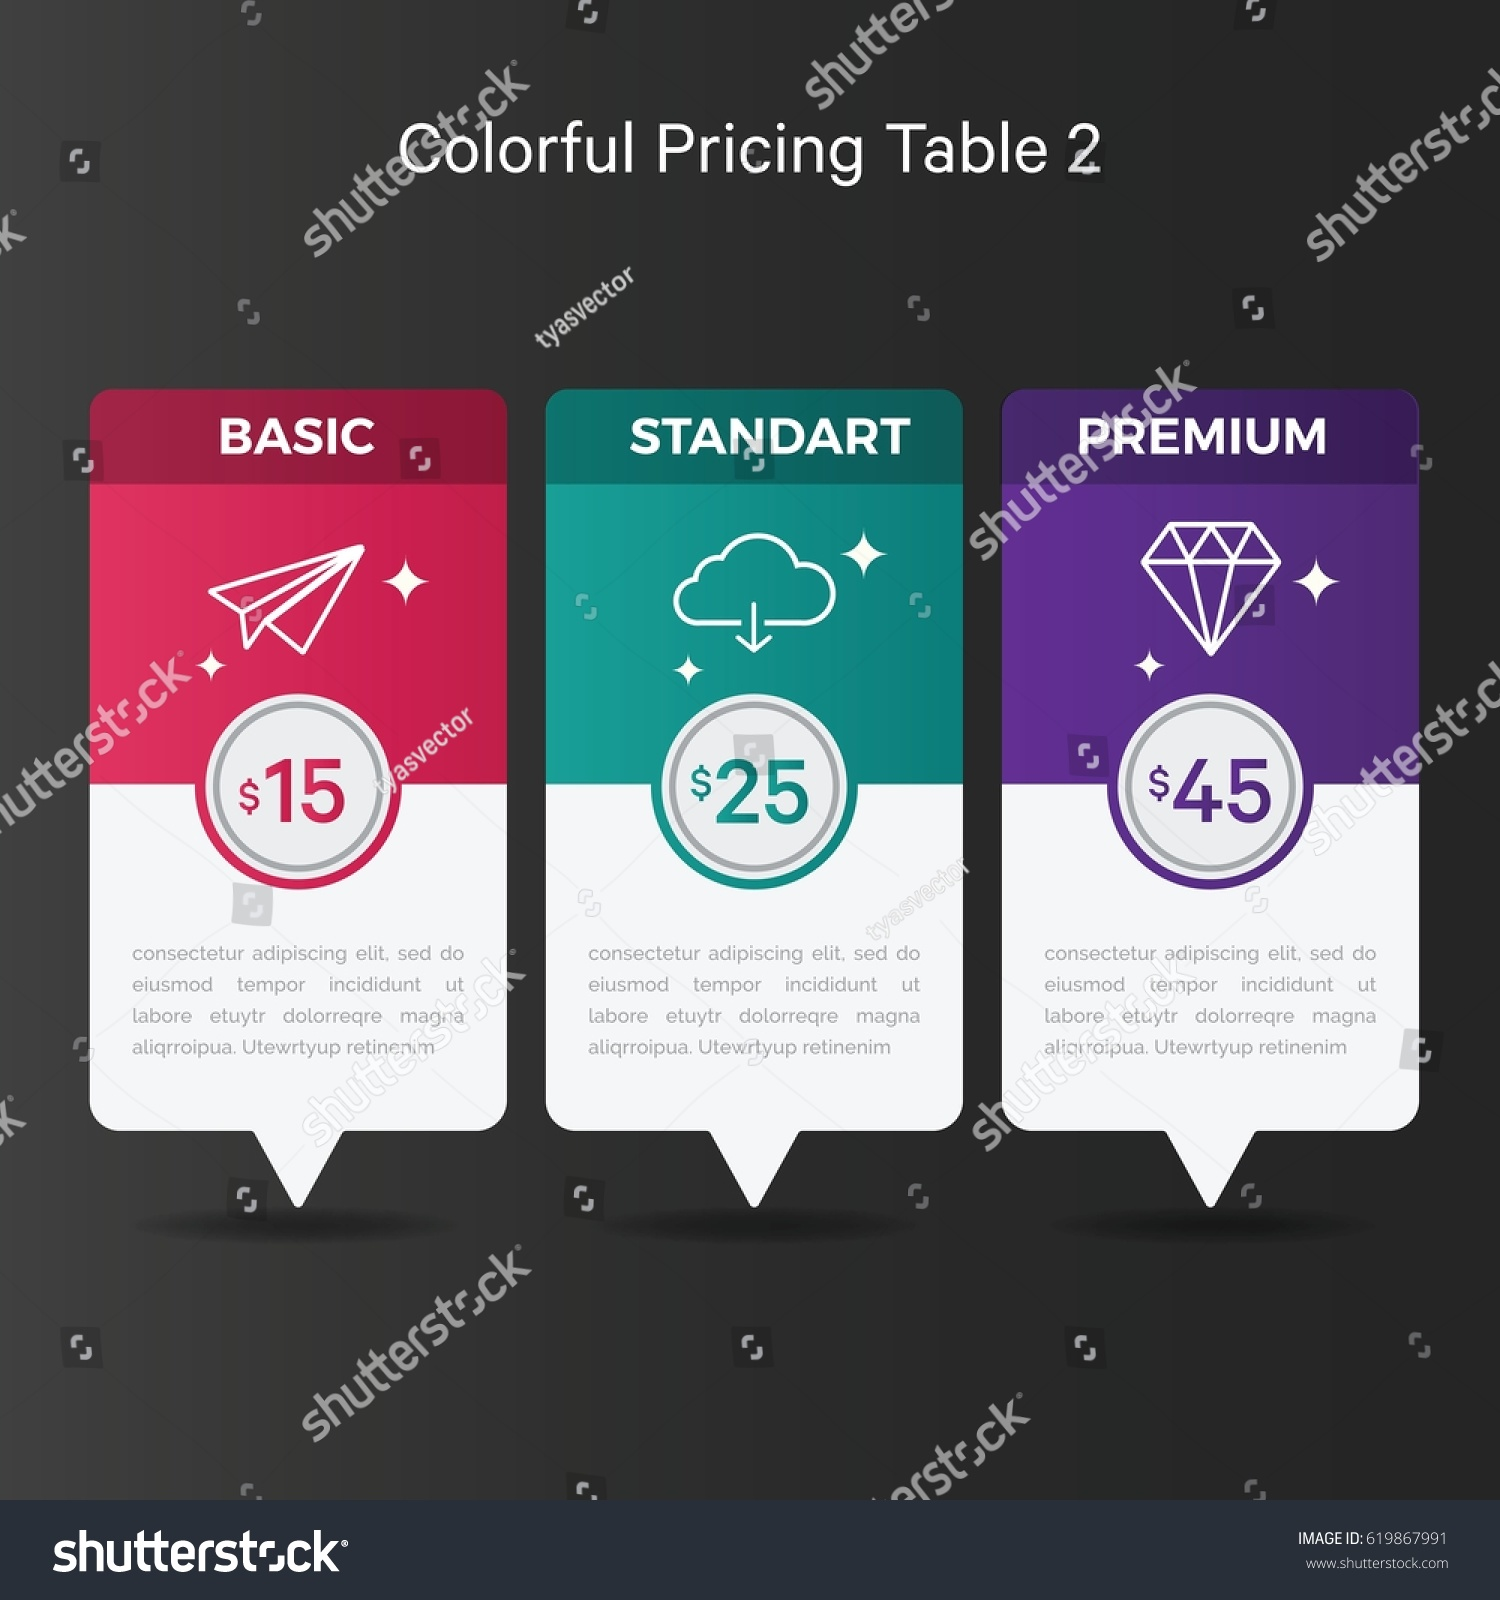 colorful pricing table graphic design elements stock vector (royalty